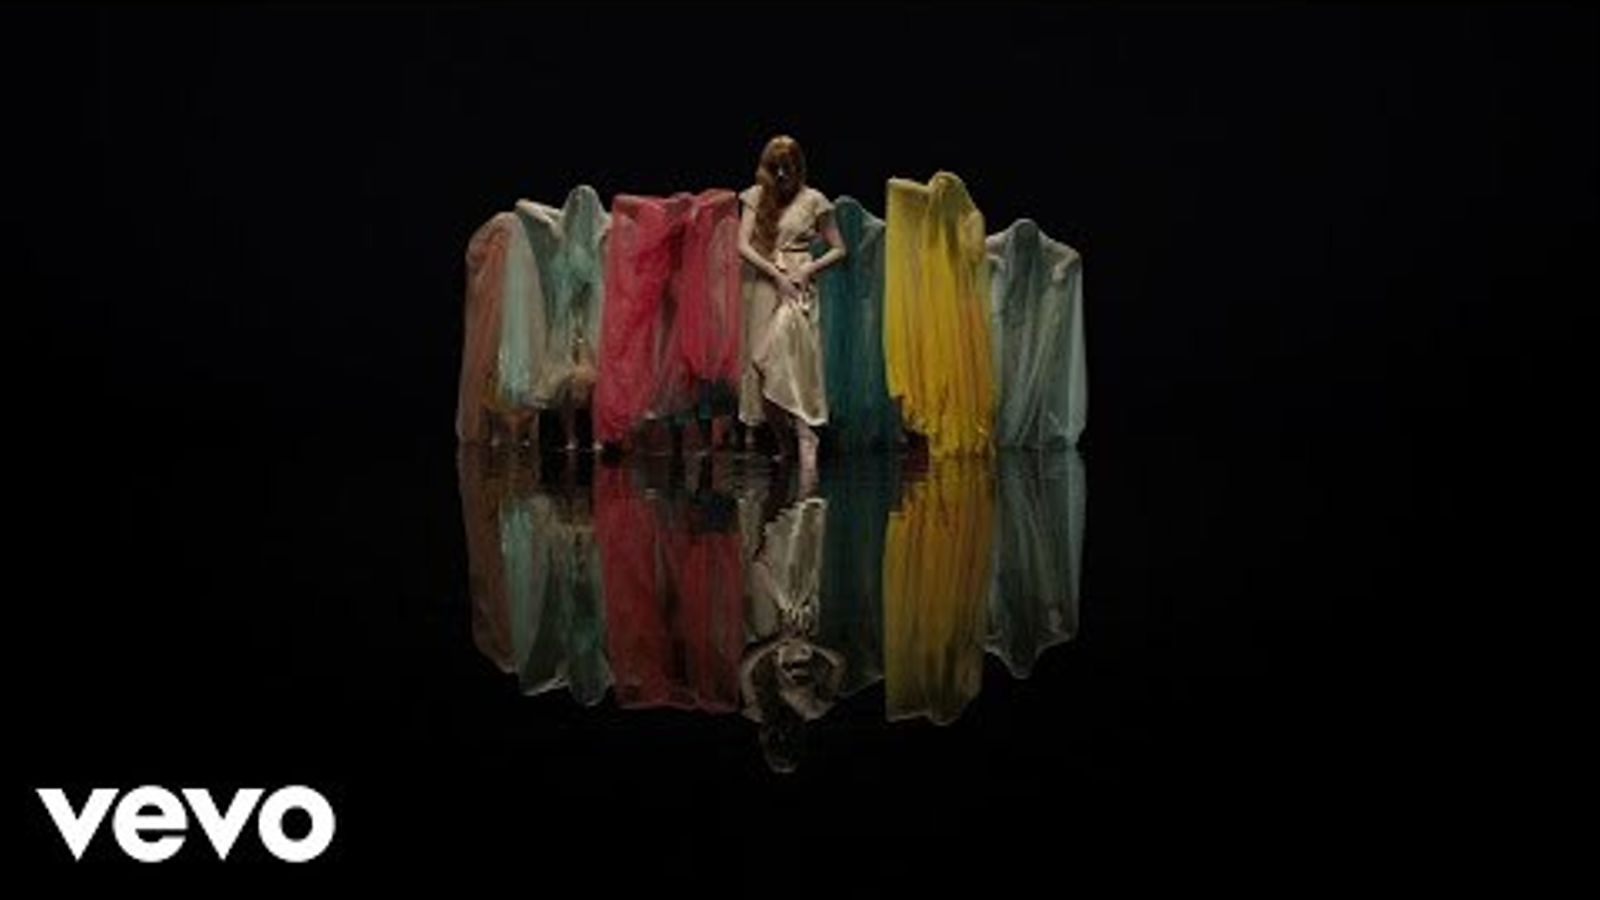 Videoclip de 'Big god', de Florence and the machine